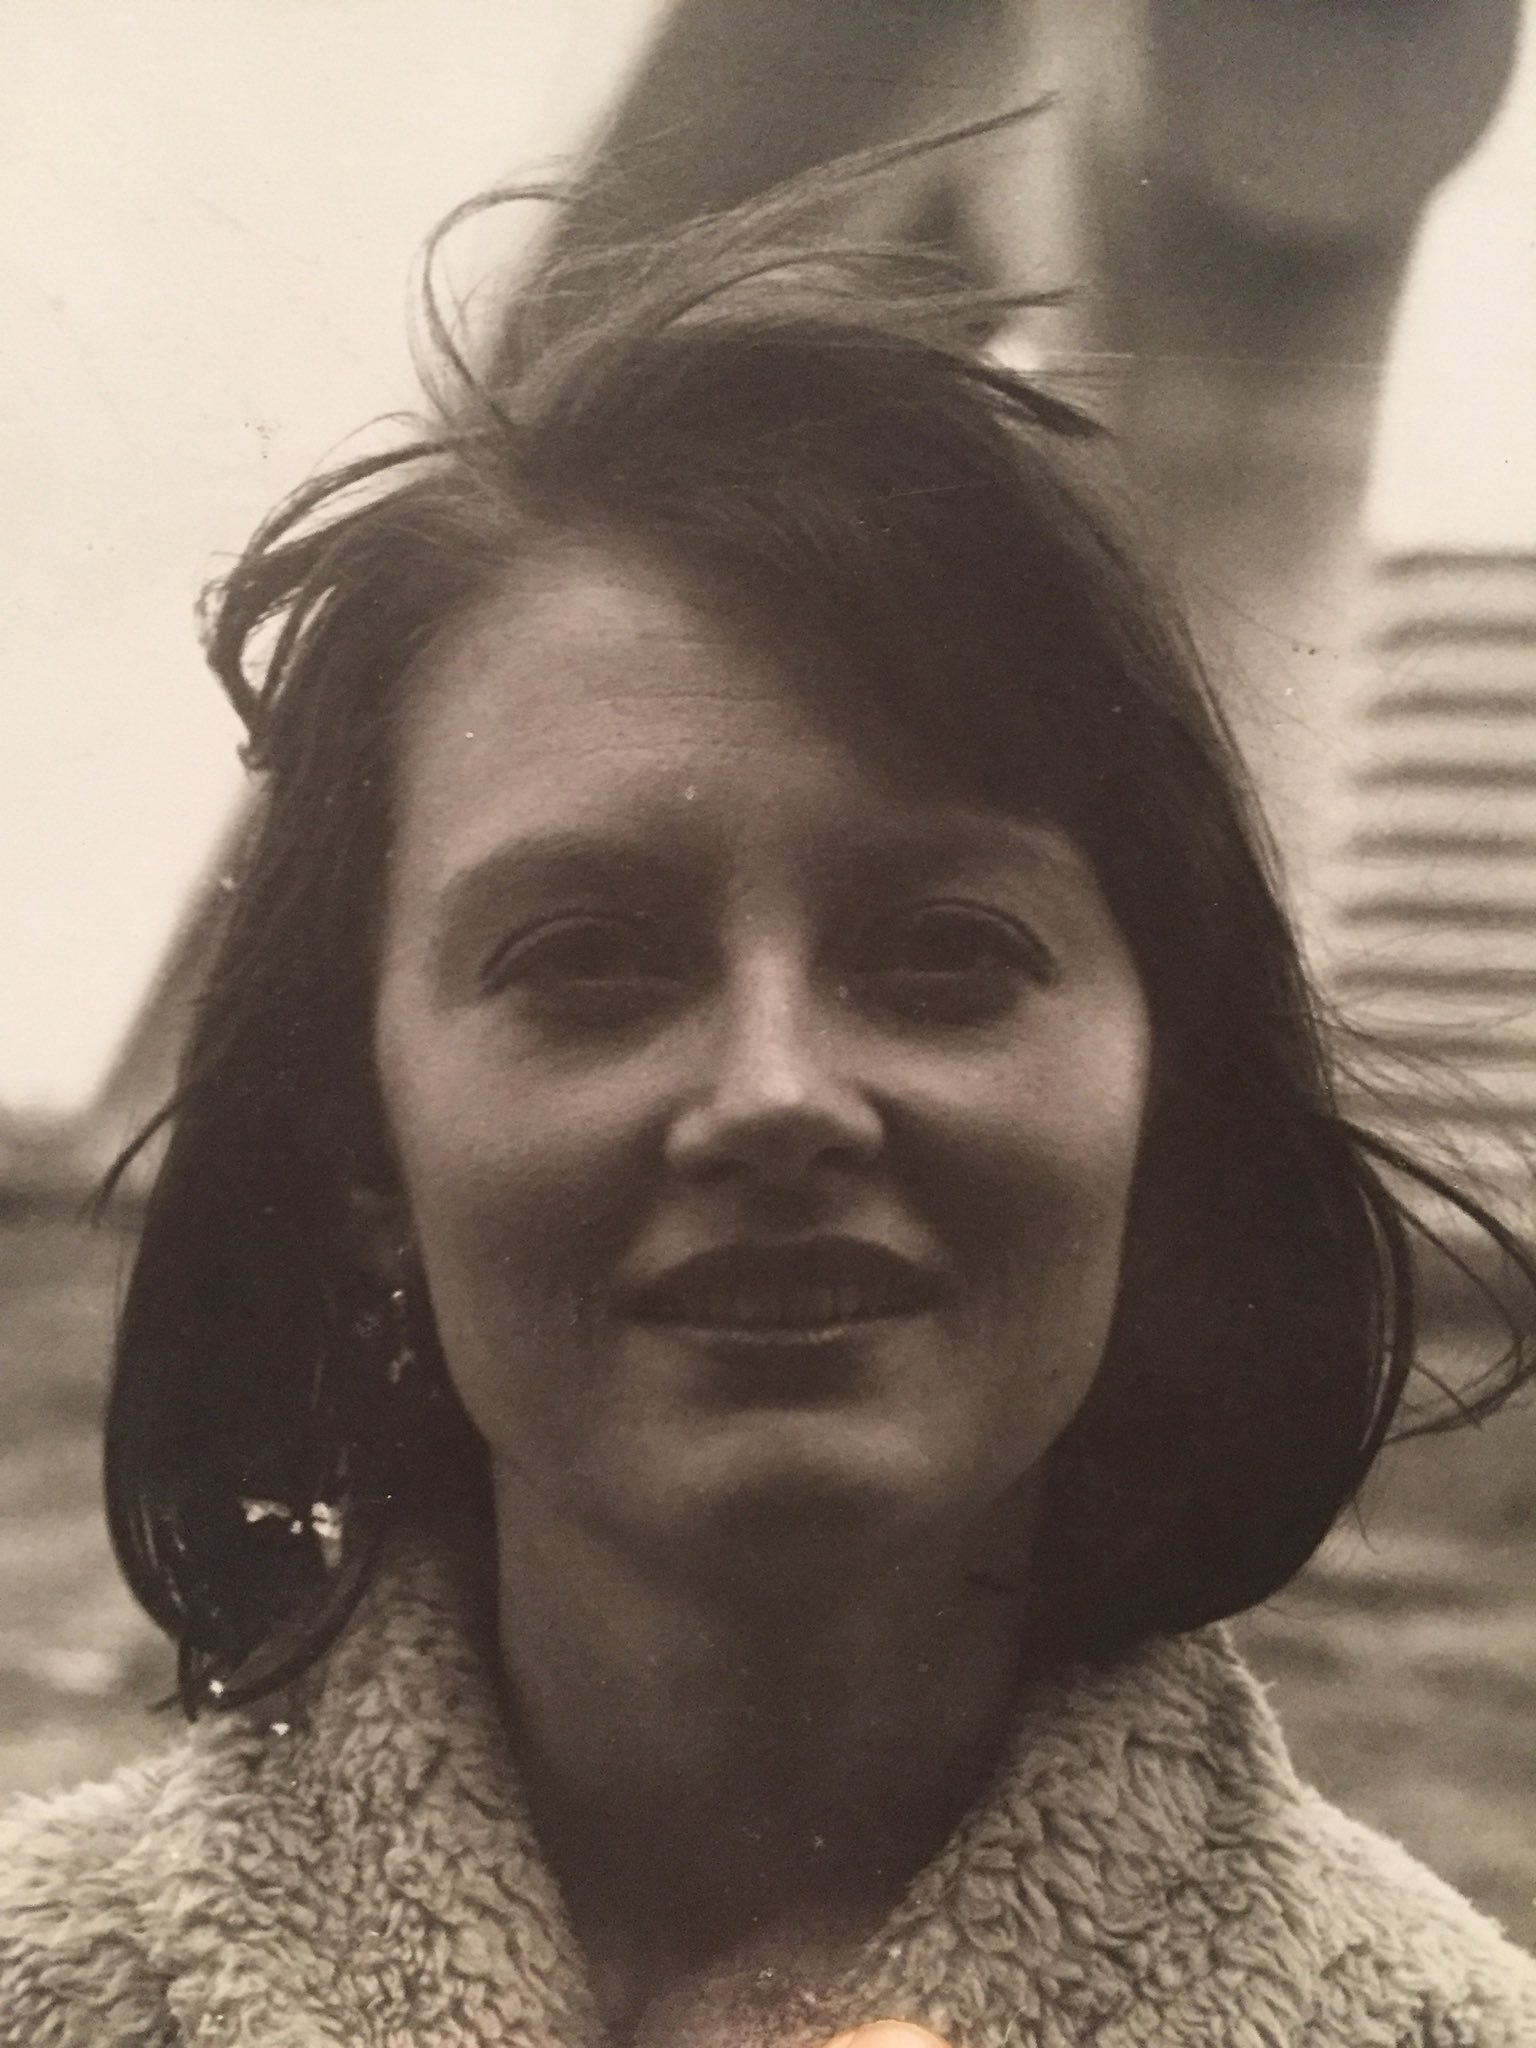 My beautiful mother. Who always reminds me a bit of @SusanSarandon https://t.co/9ipJSdloTV